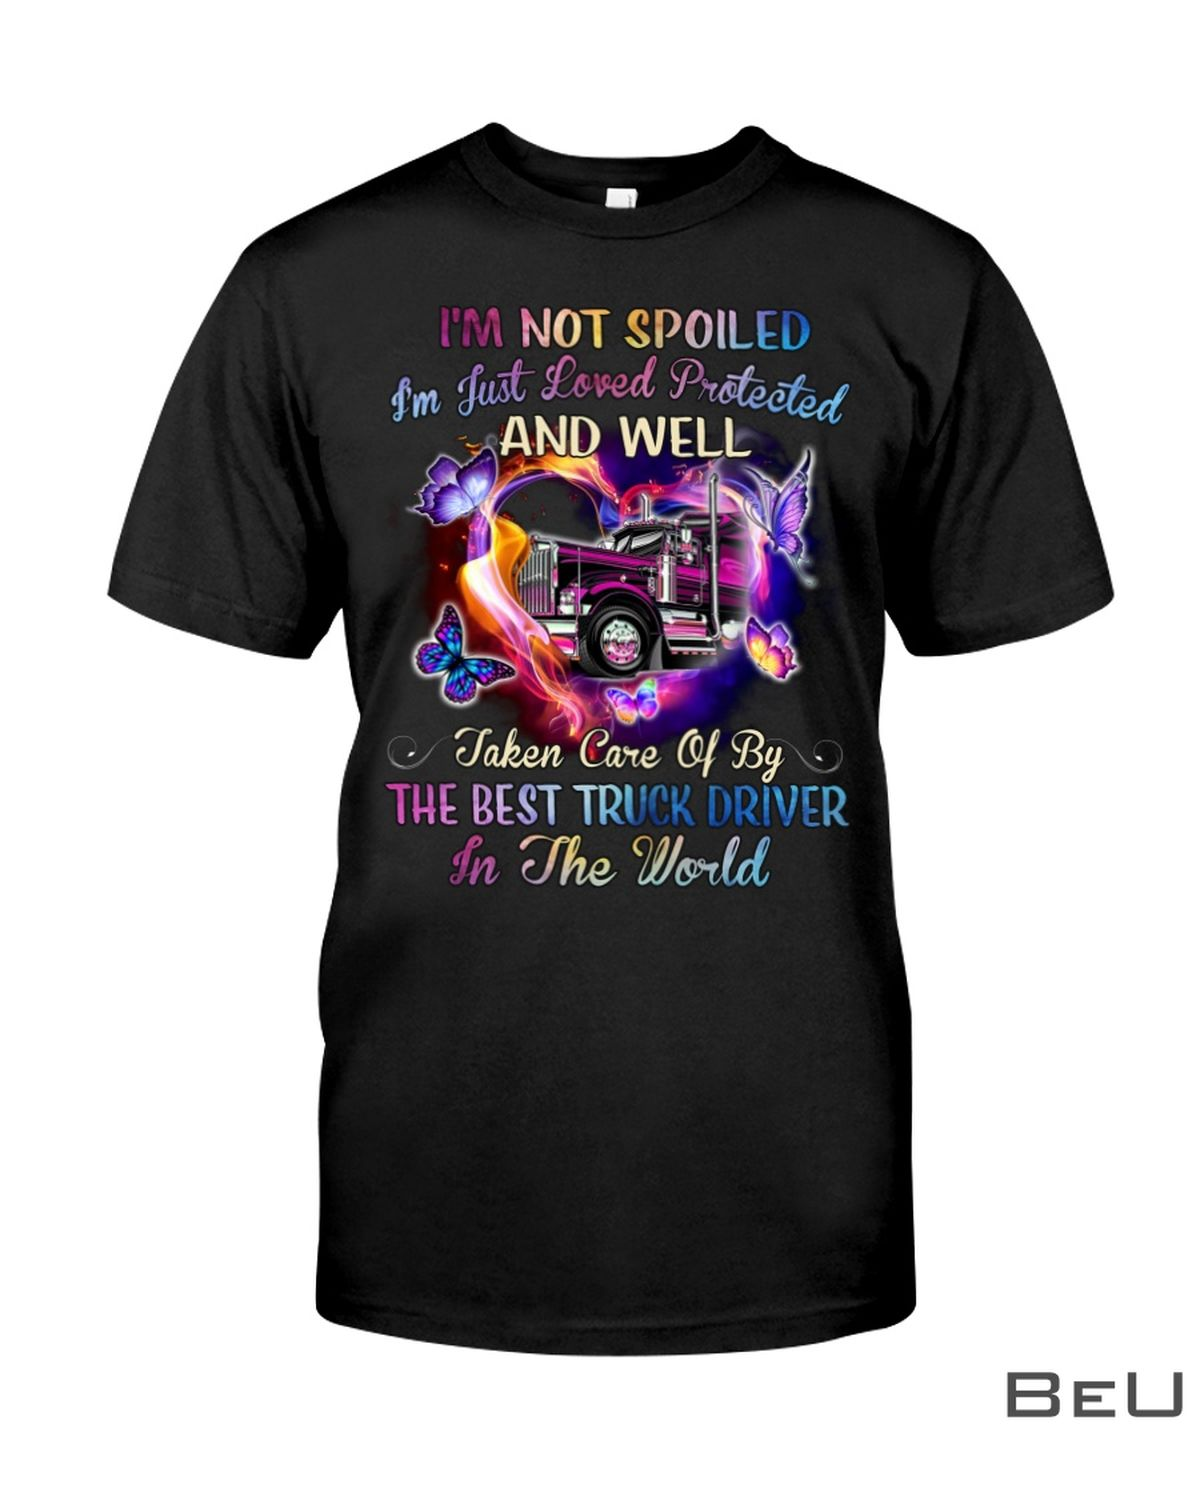 I'm not spoiled I'm just loved protected and well taken care of by the best truck driver in the world shirt